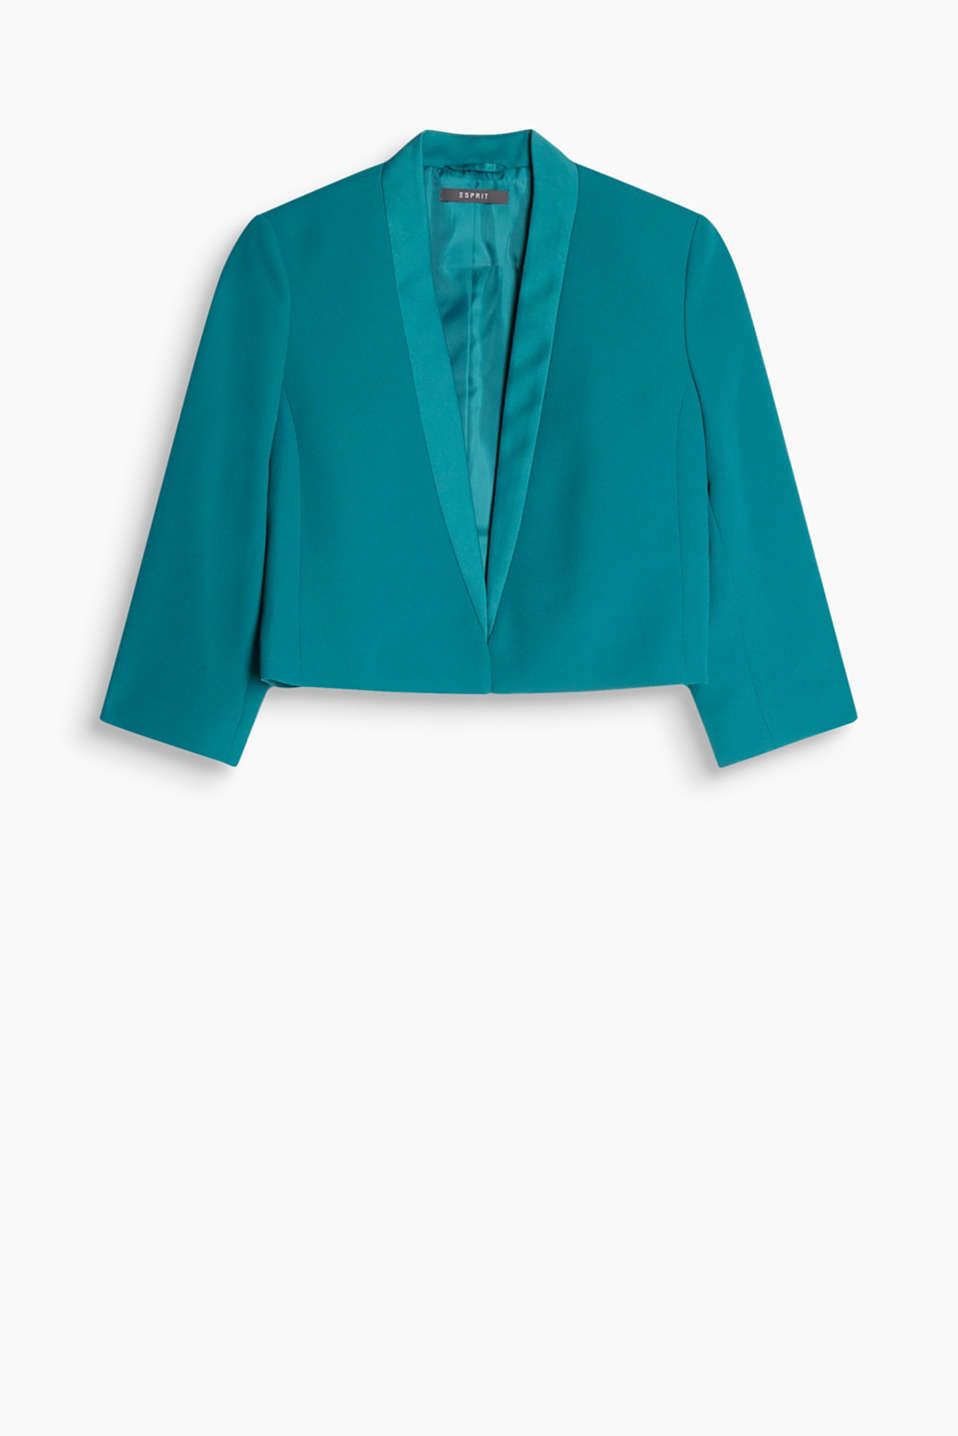 Cropped crêpe blazer in a dinner jacket style with a satin lapel and three-quarter length sleeves